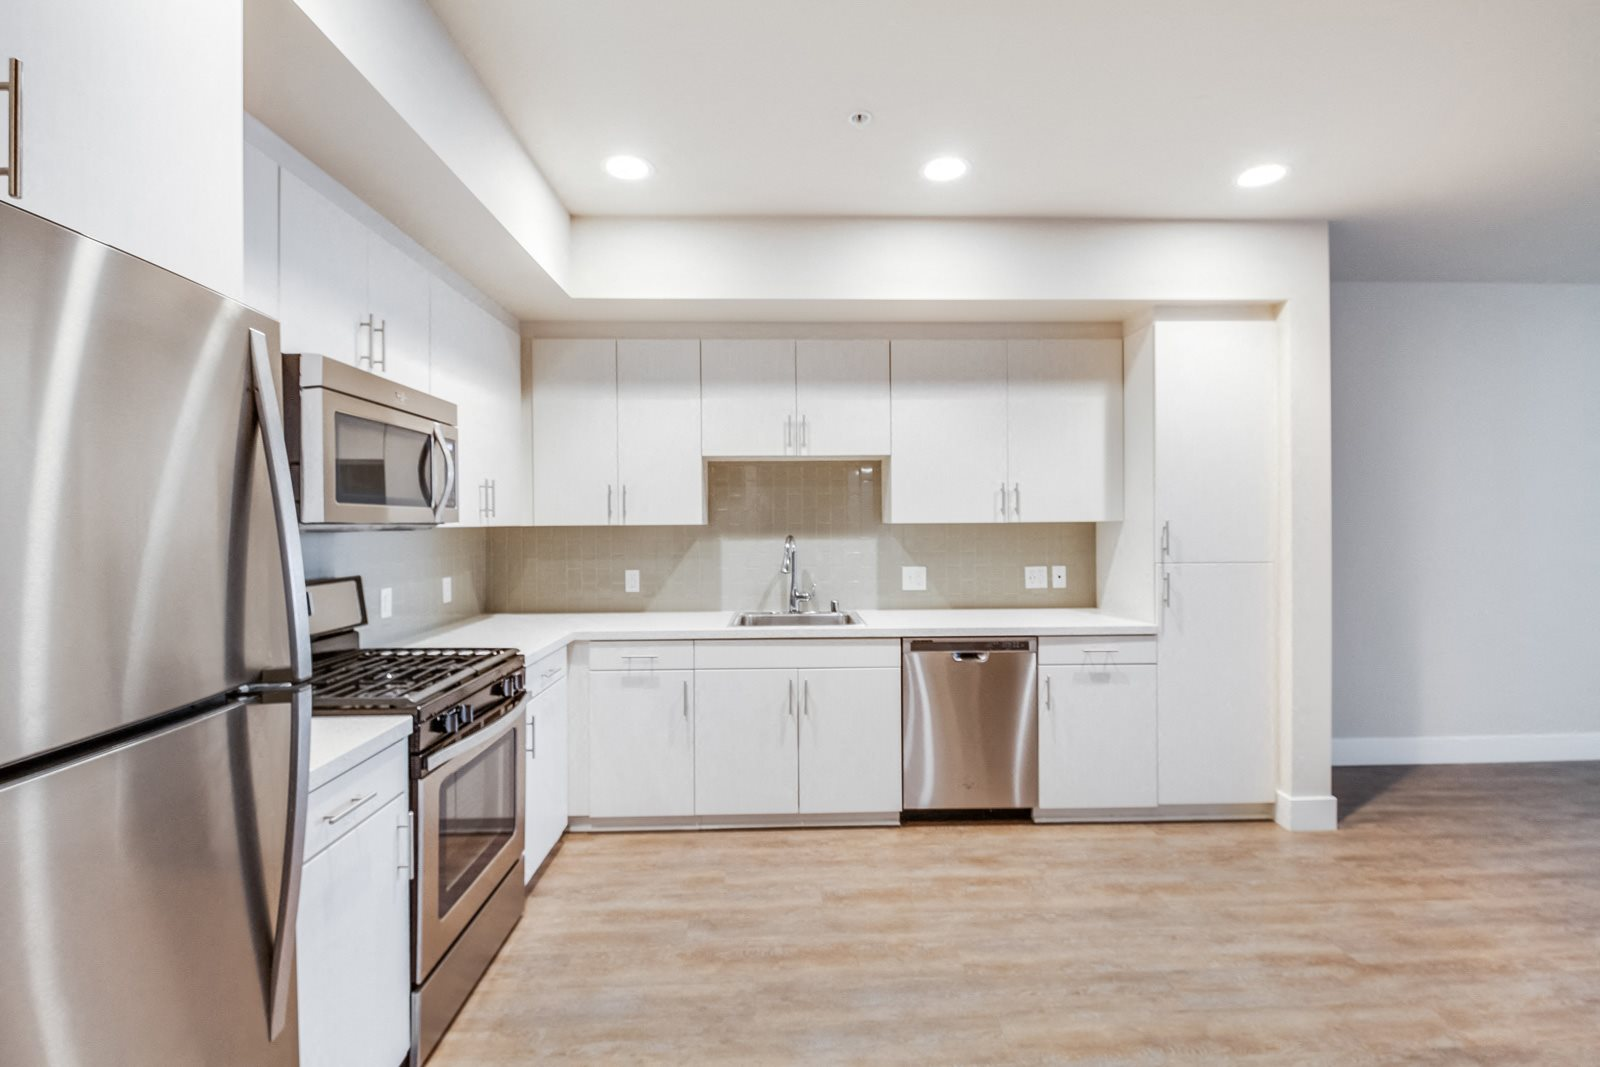 Modern Kitchens with Quartz Counters at Malden Station by Windsor, California, 92832